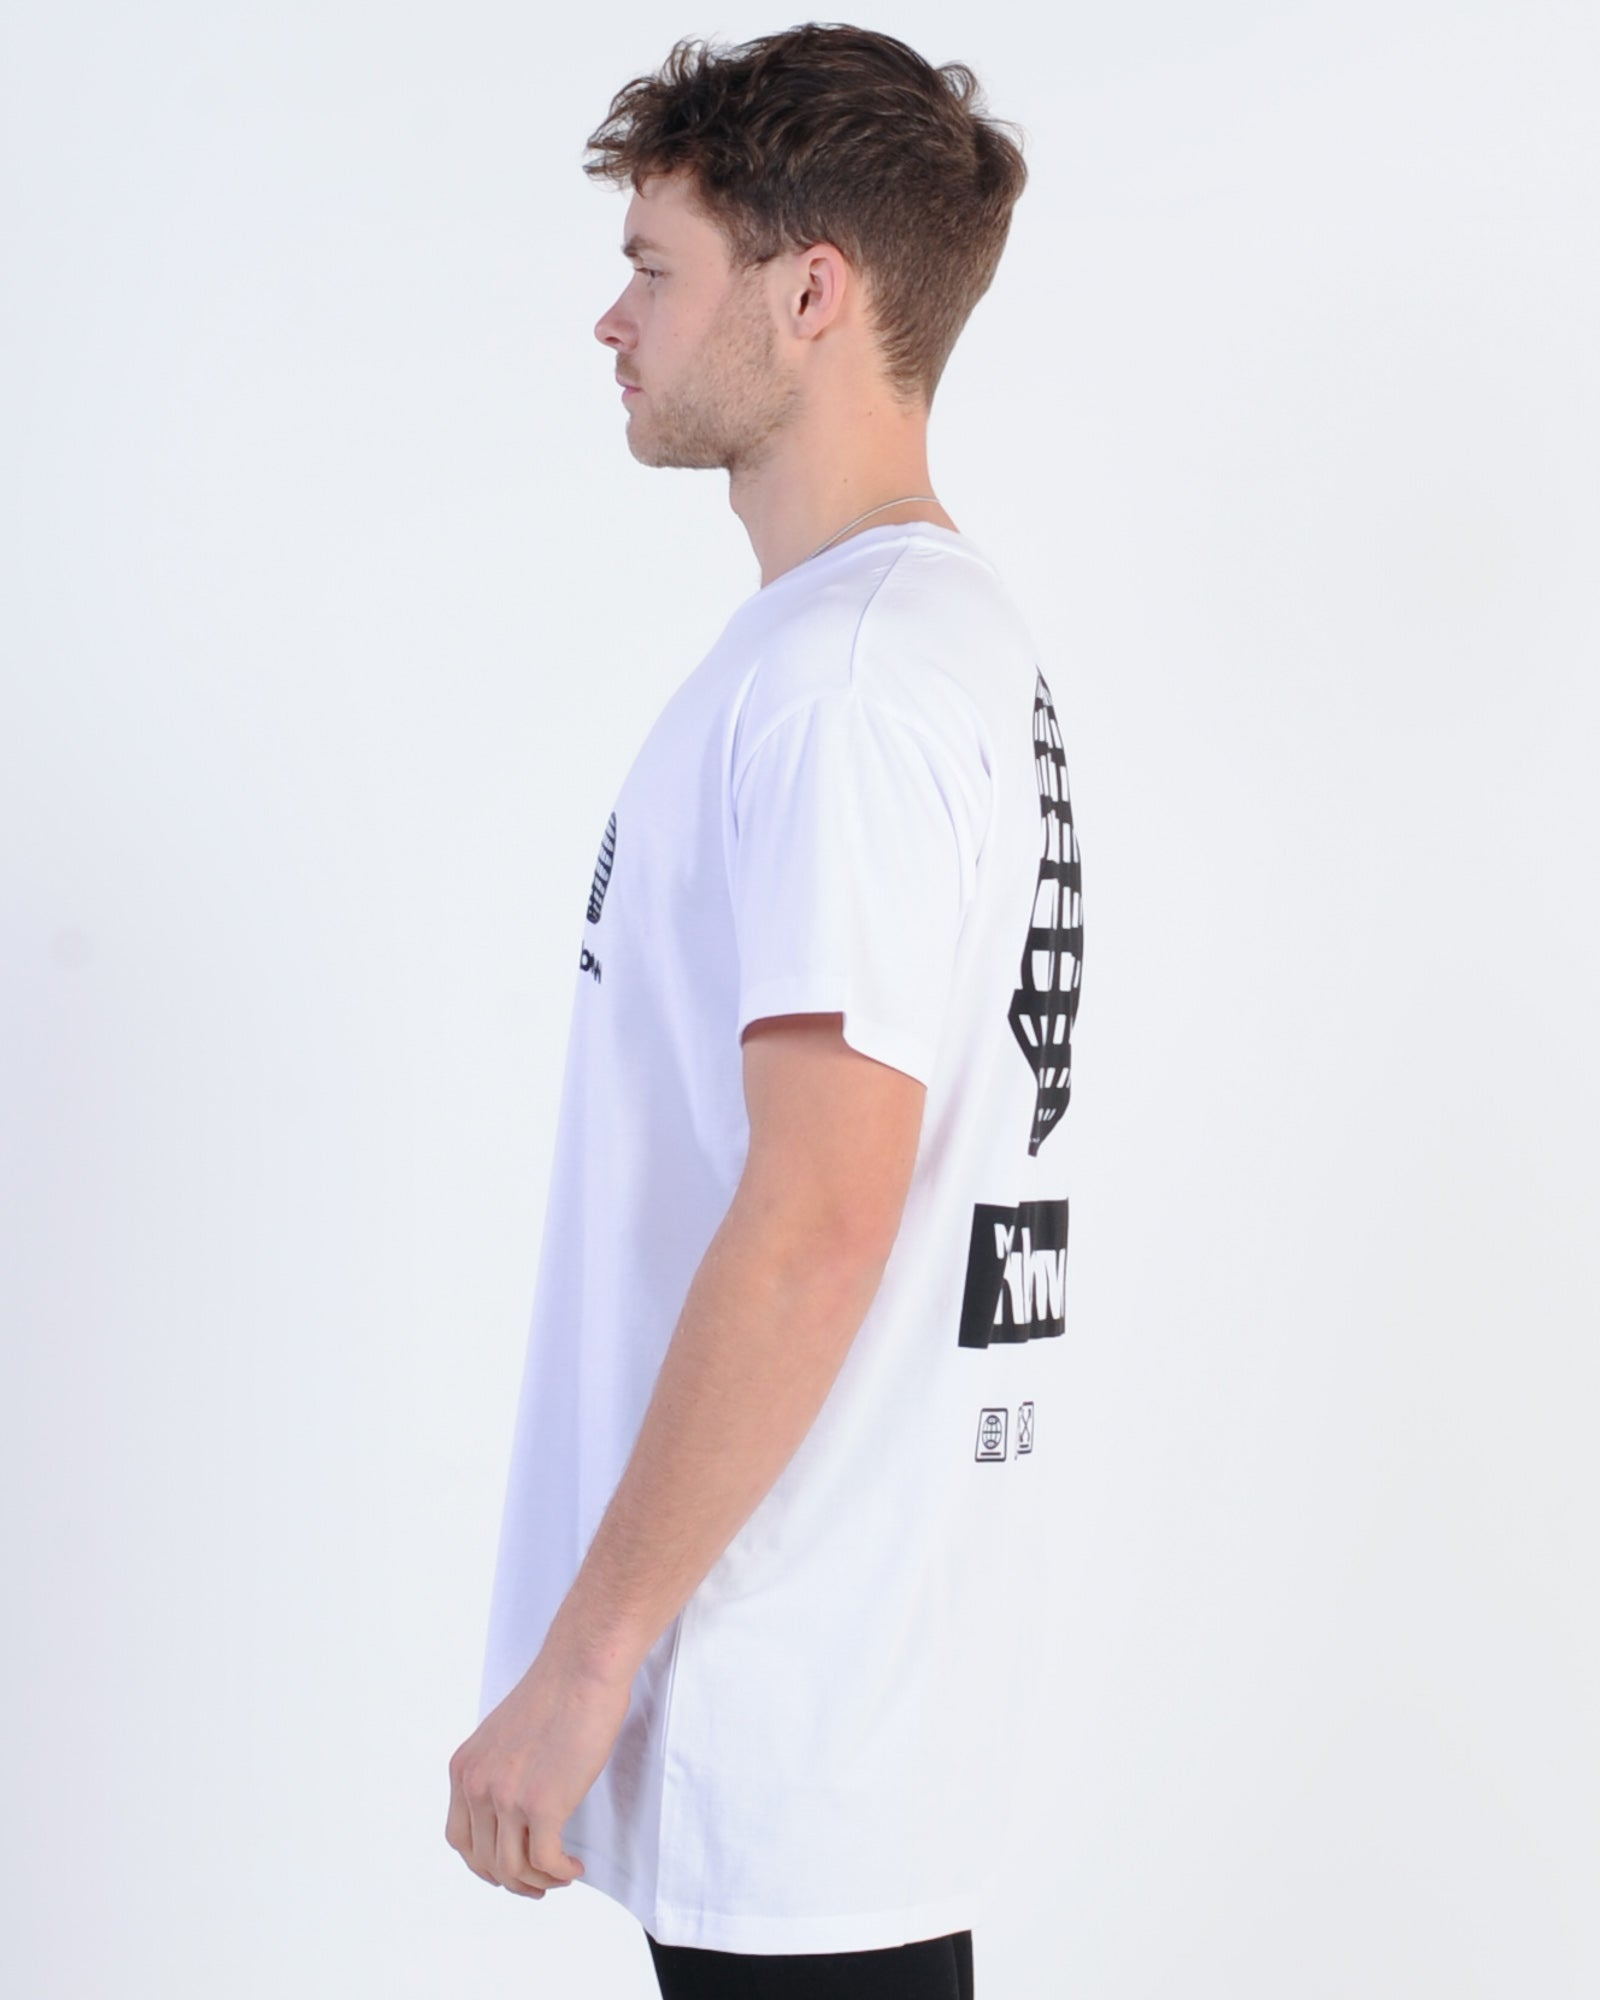 Wndrr Original Custom Fit Tee - White